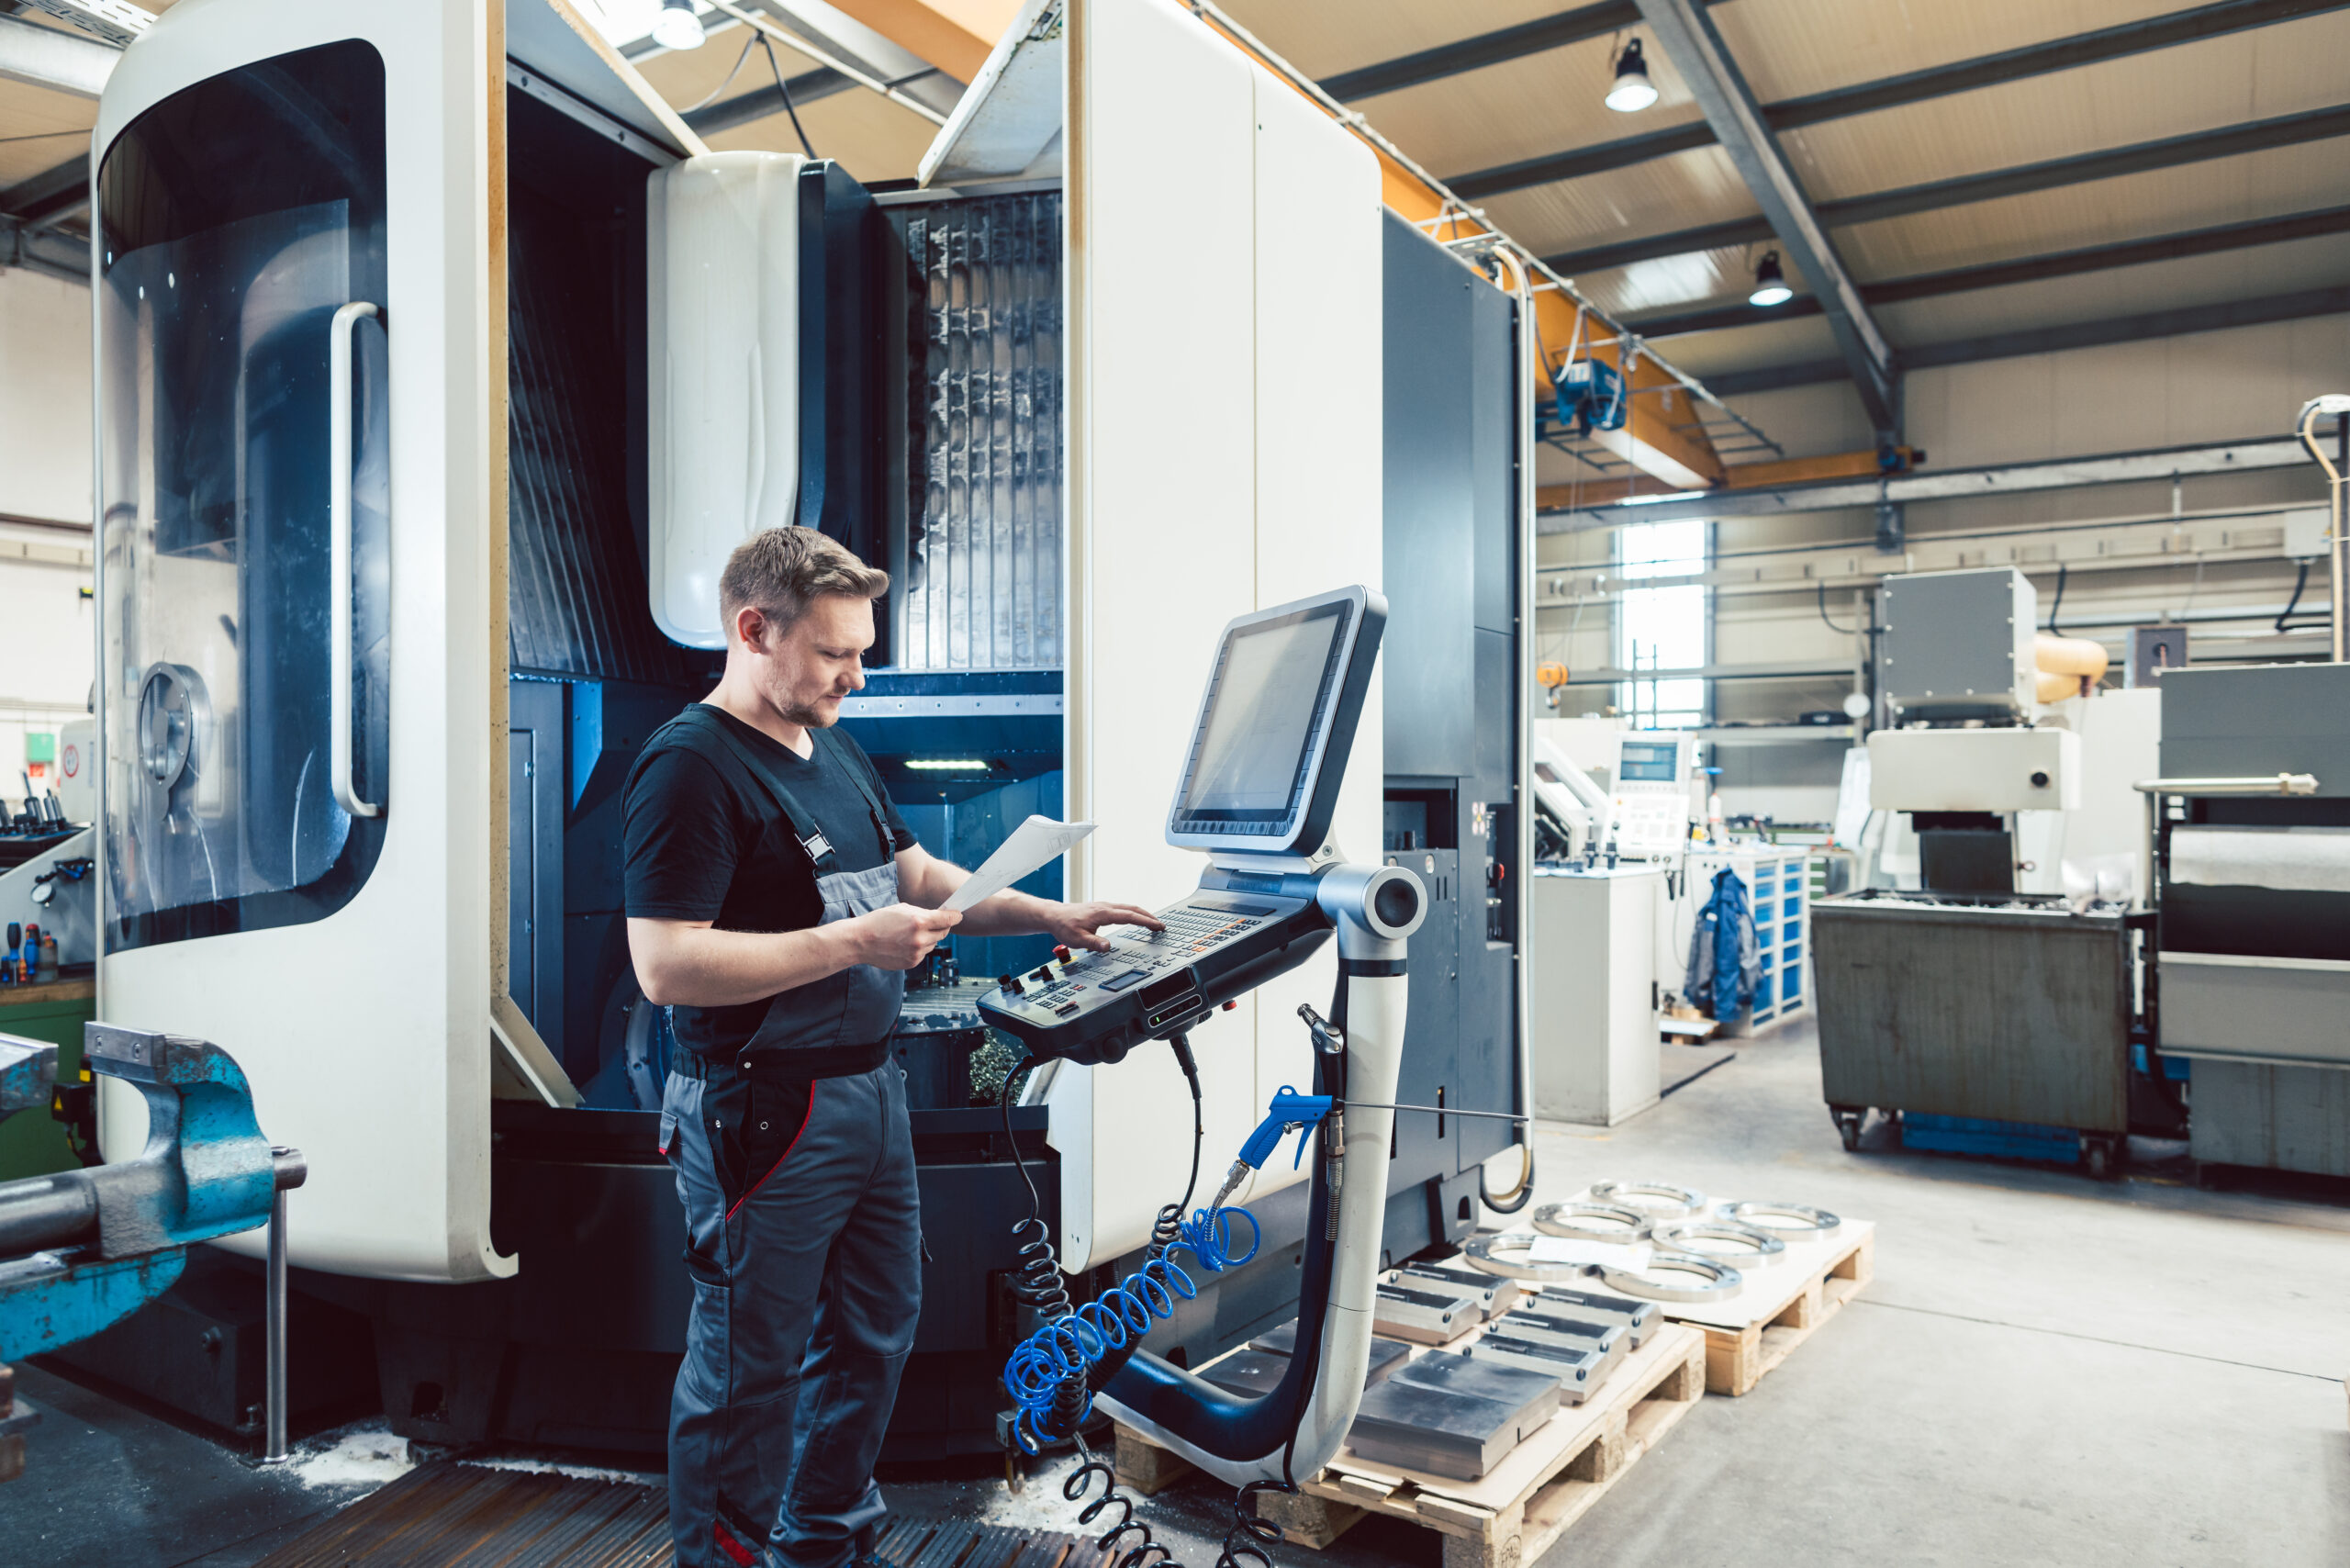 Worker in metal industry operating a modern cnc machine